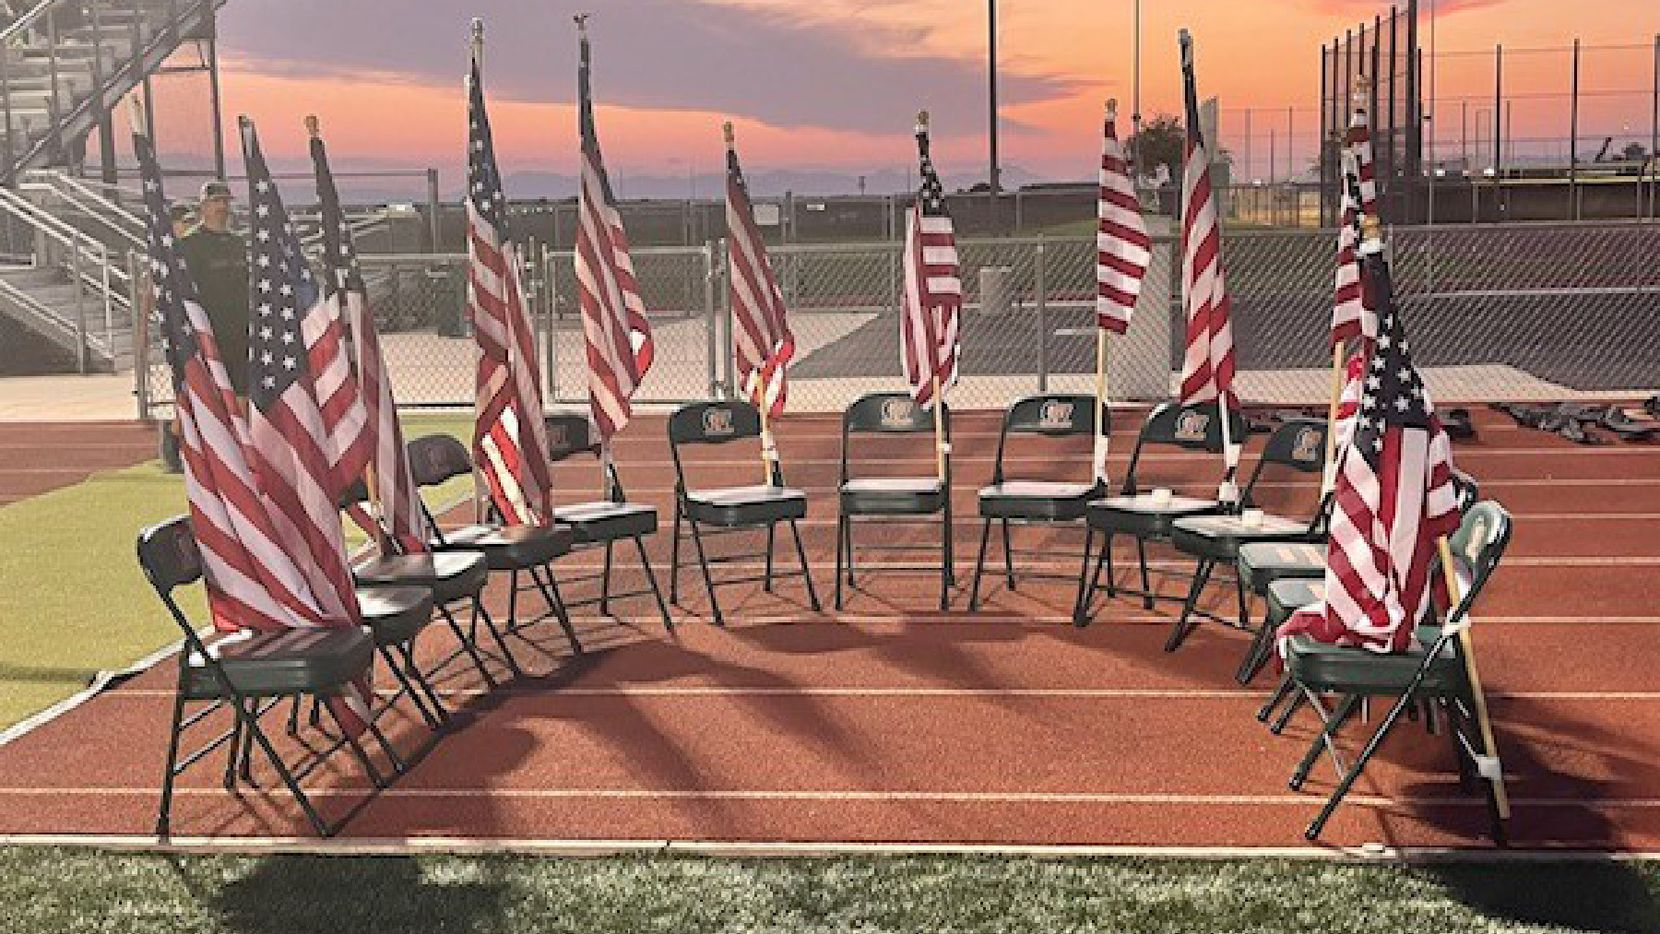 Campo Verde High School varsity football team carried 13 American flags to the field to honor the 13 service members killed Aug. 26 in Afghanistan. Kathleen Diggs, counselor and community service coordinator at Campo Verde, said the flags were then set up near the field with 13 empty chairs.